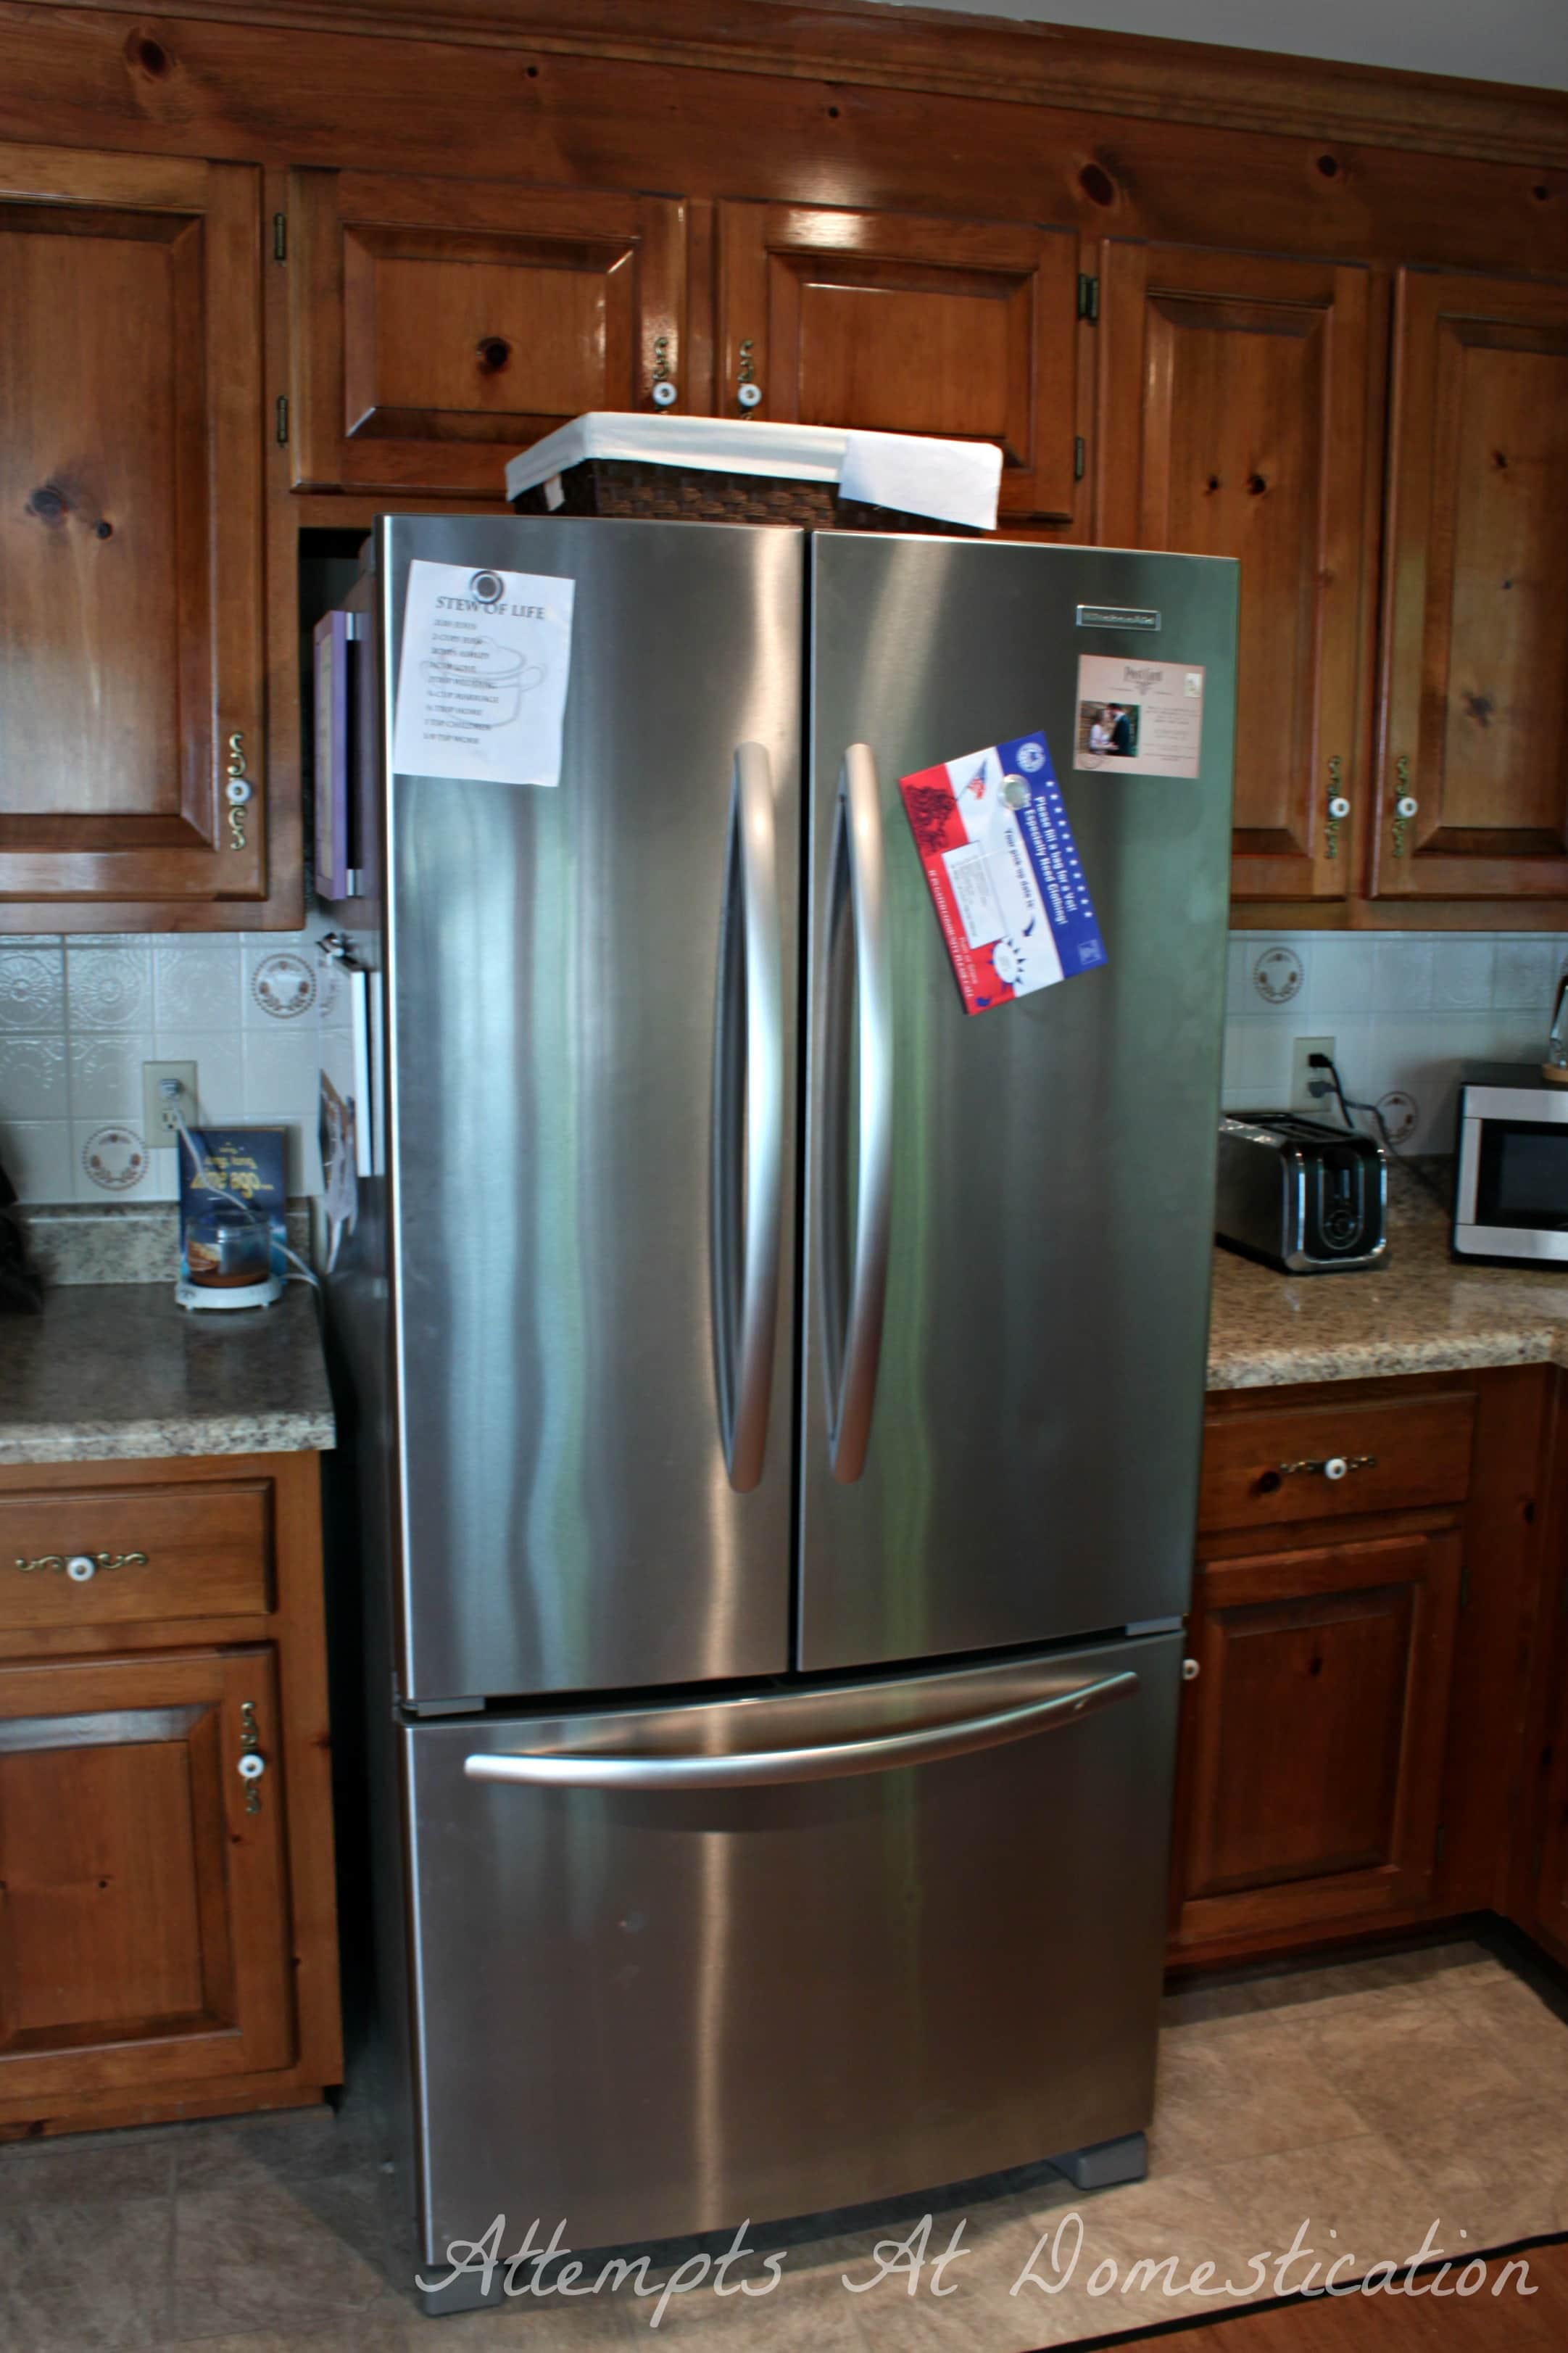 Kitchenaid french door refrigerator kitchenaid french door refrigerator rubansaba